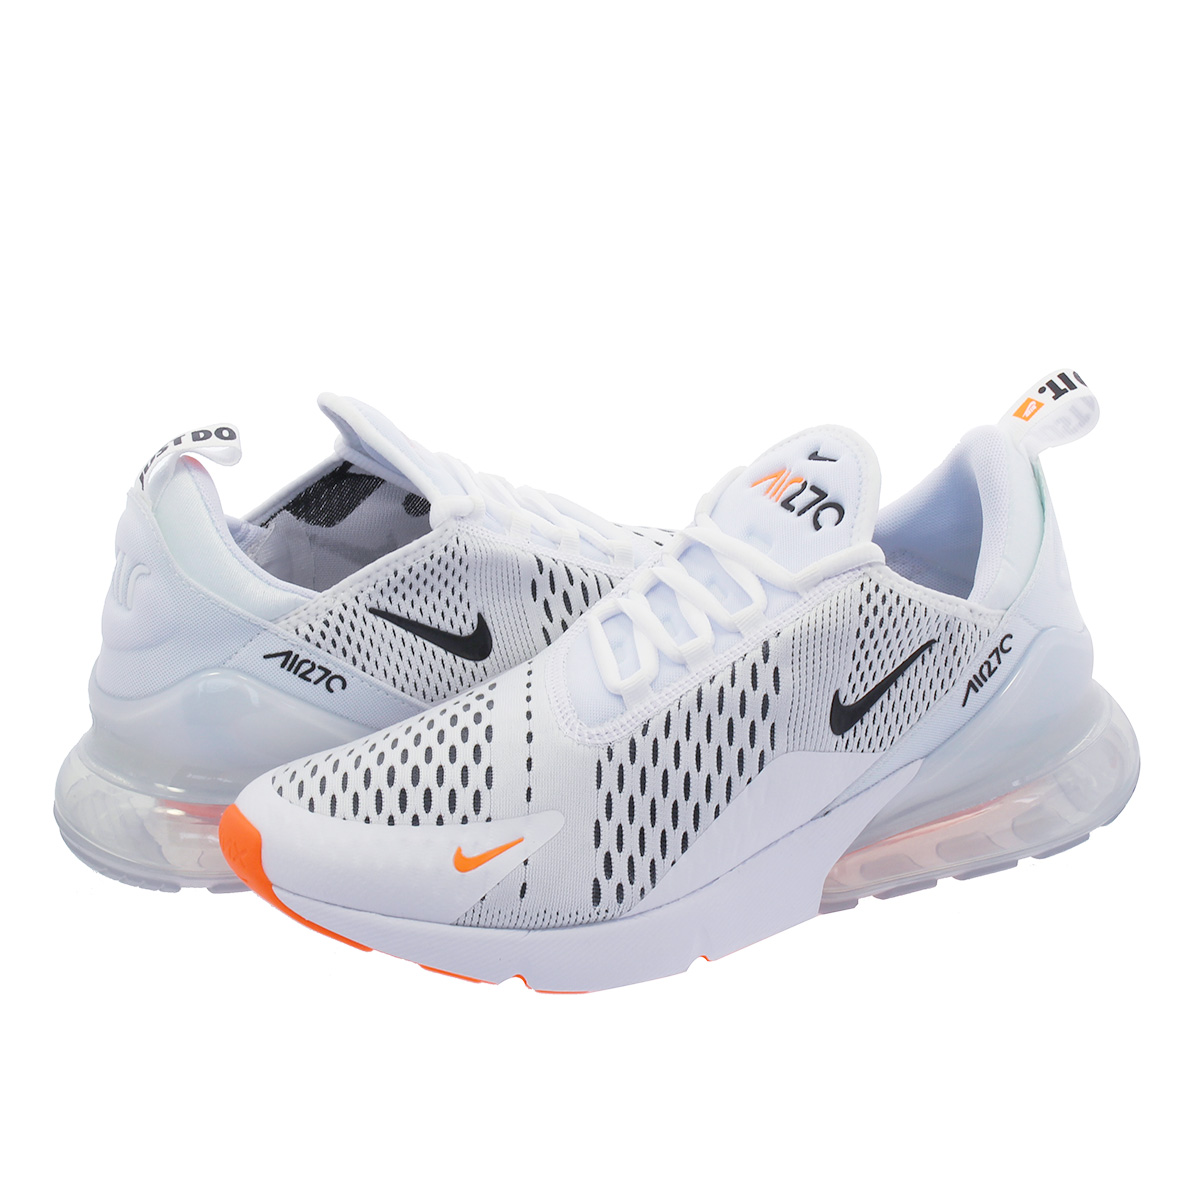 5b5bb3c9d0f SELECT SHOP LOWTEX  NIKE AIR MAX 270 Kie Ney AMAX 270 WHITE BLACK TOTAL  ORANGE ah8050-106